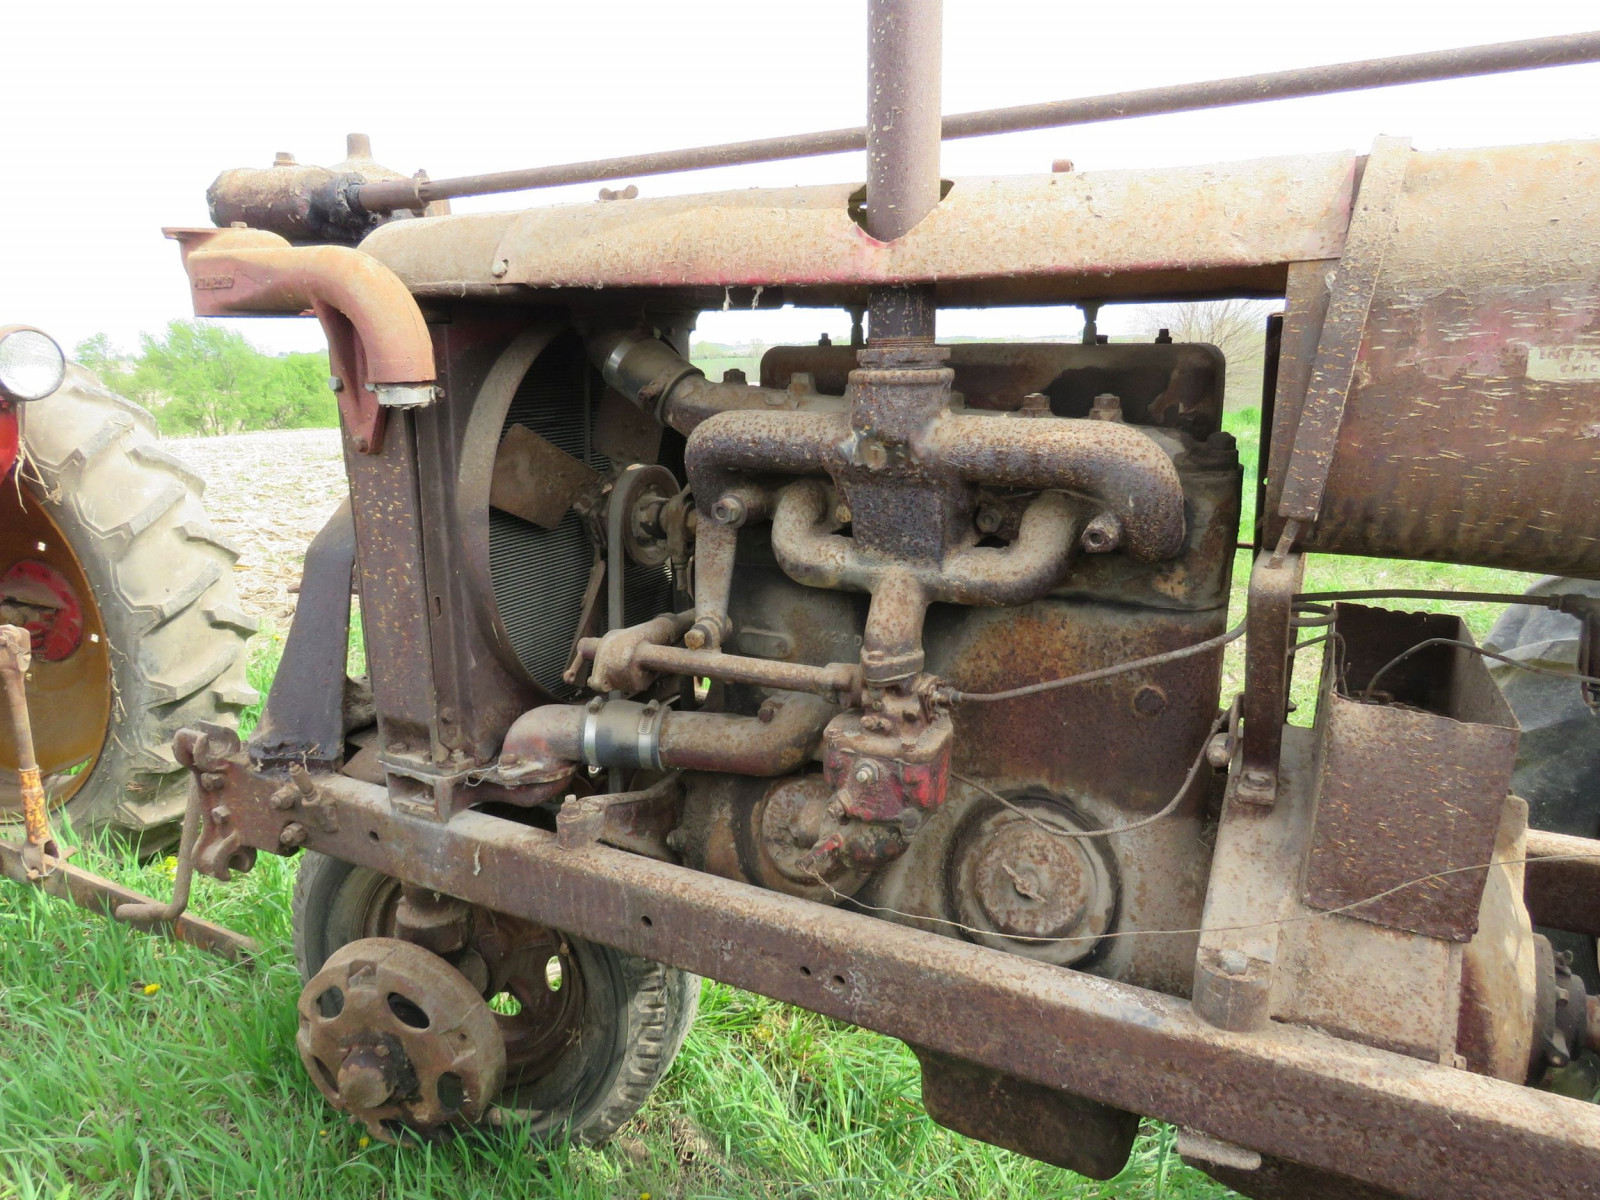 Farmall F-20 for Project or parts - Image 4